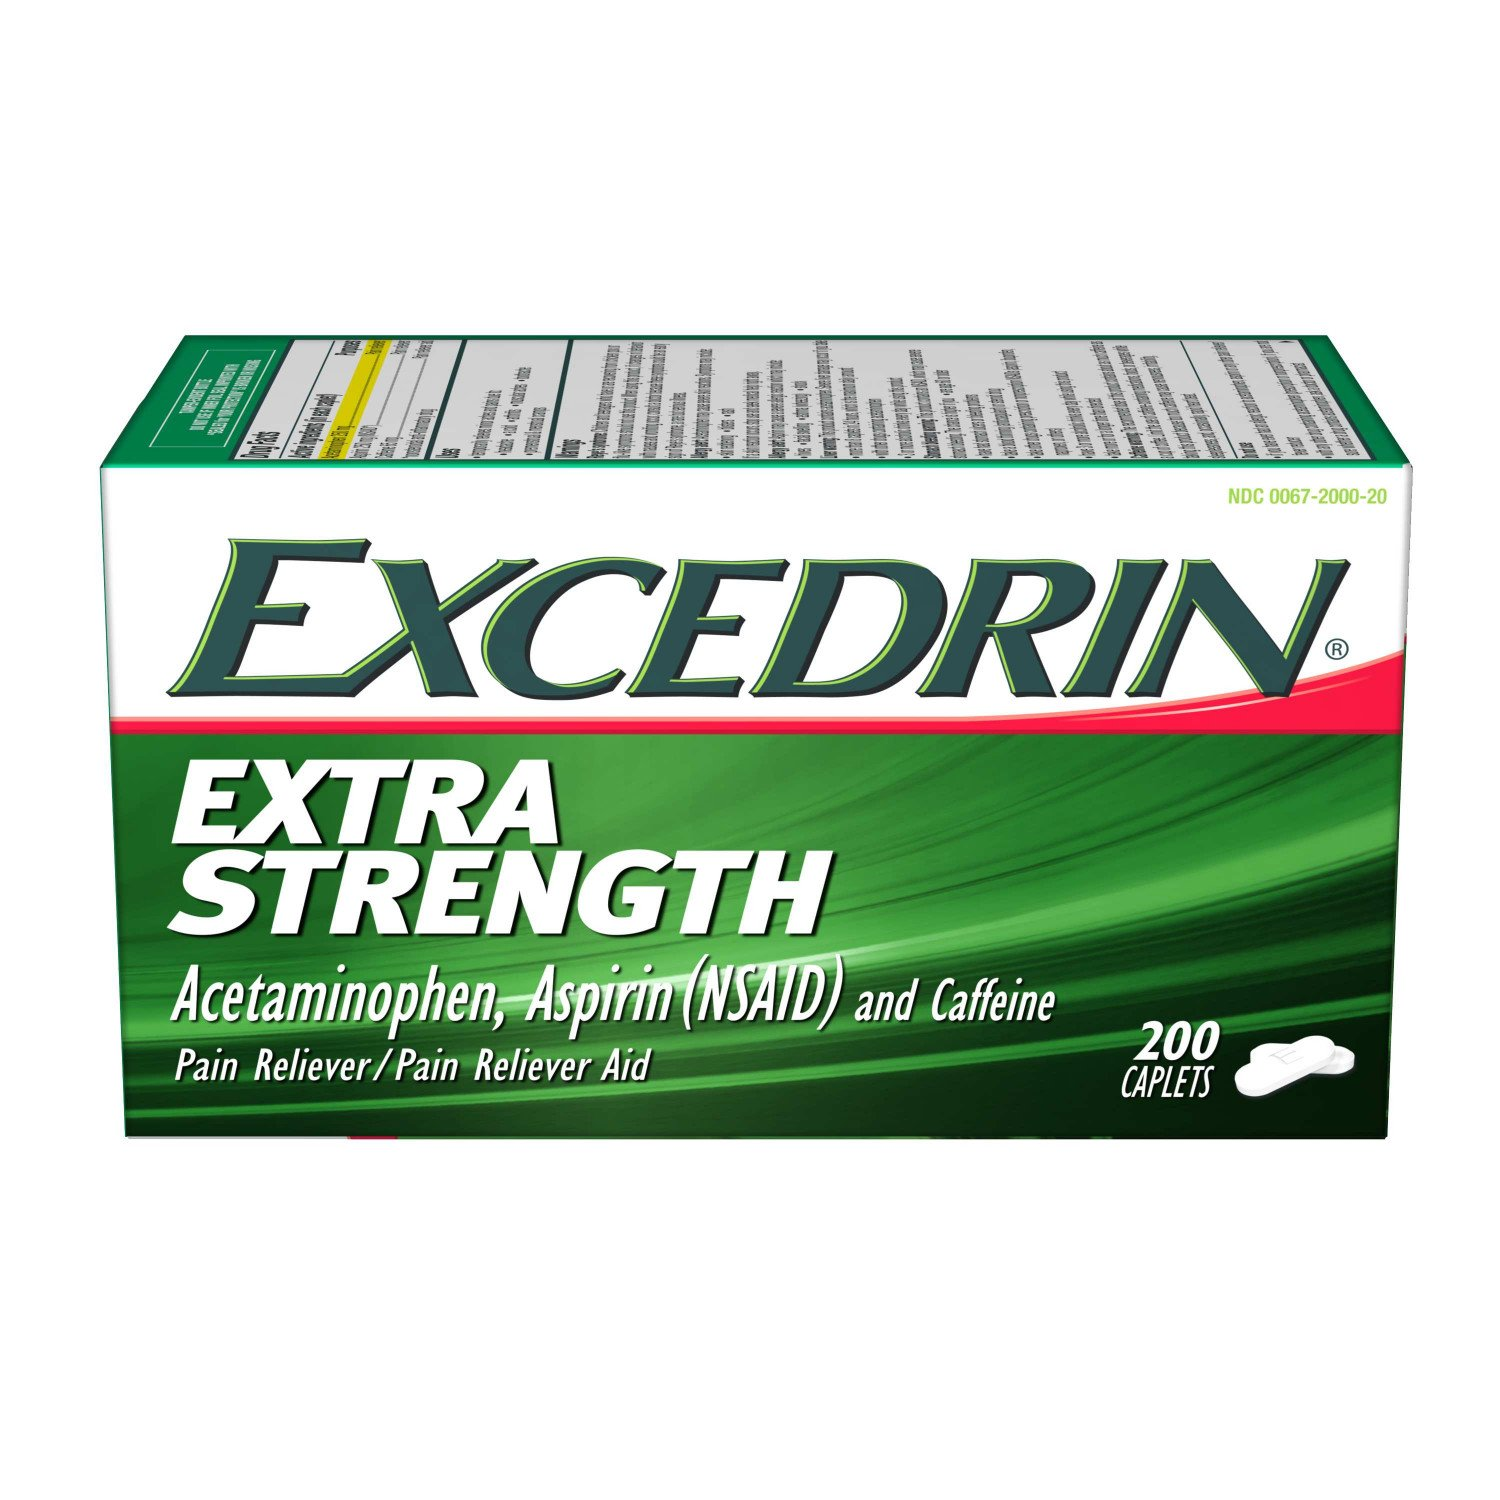 Excedrin Extra Strength Caplets for Pain Relief, 200 count